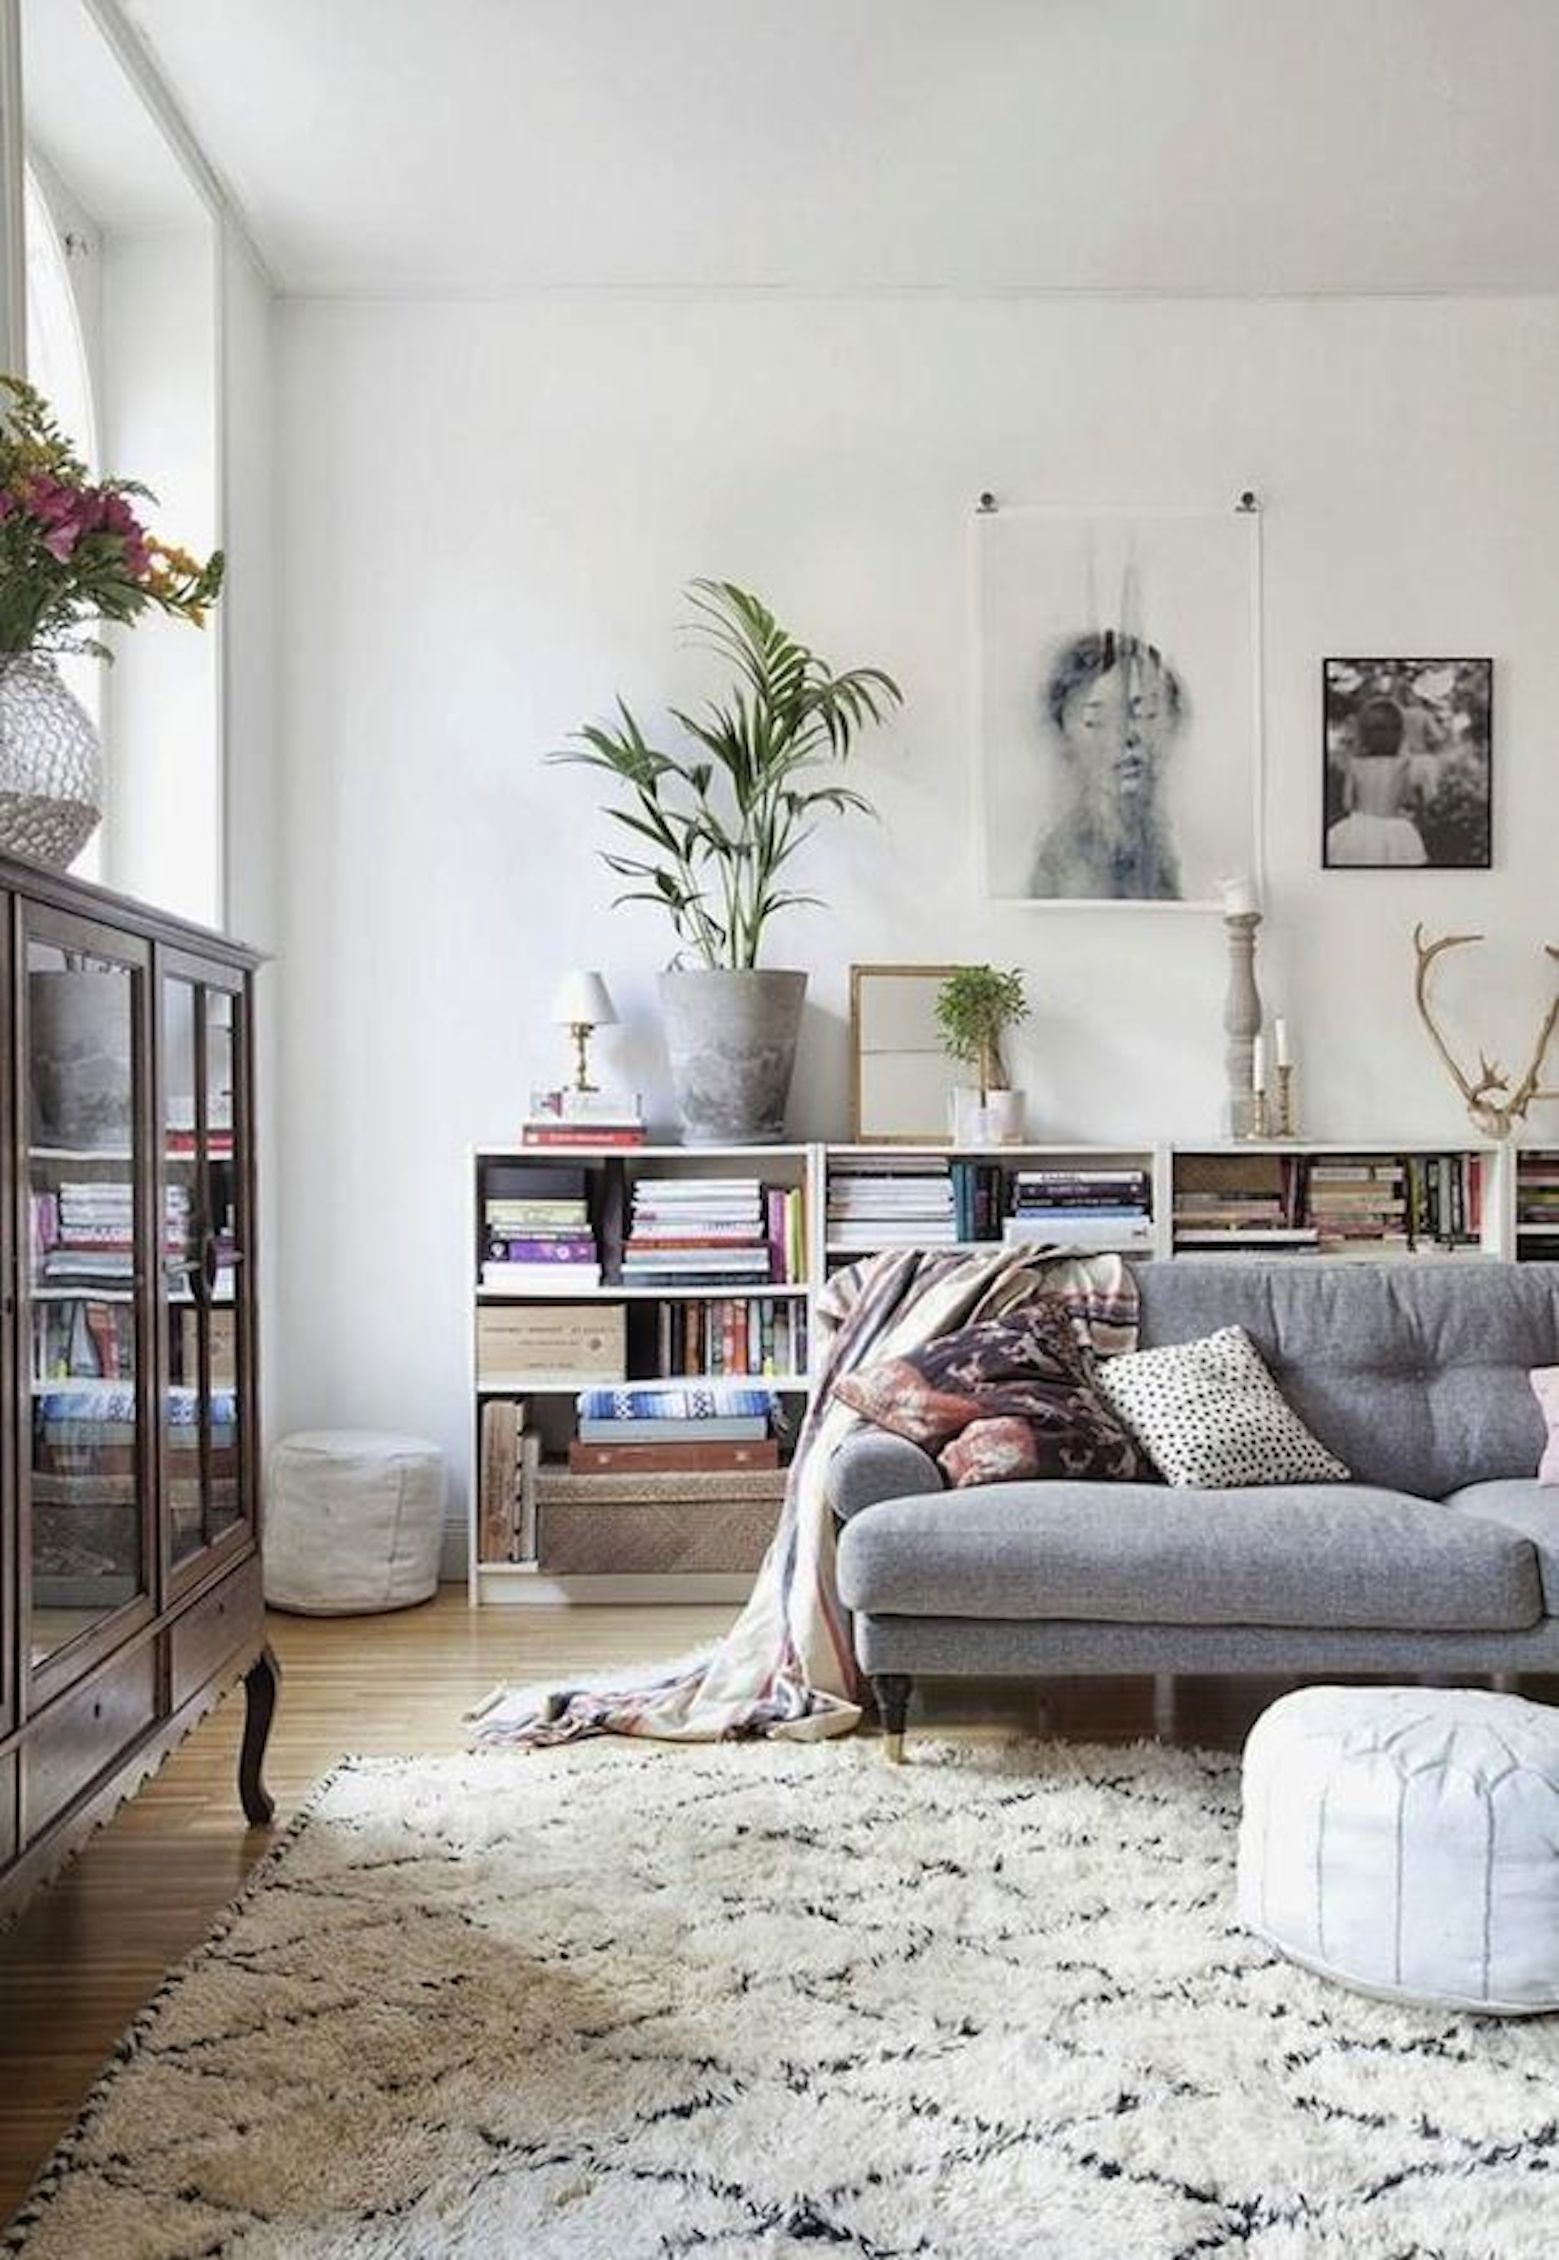 Andiec1 | Inspiration furnishing | Pinterest | Living rooms ...